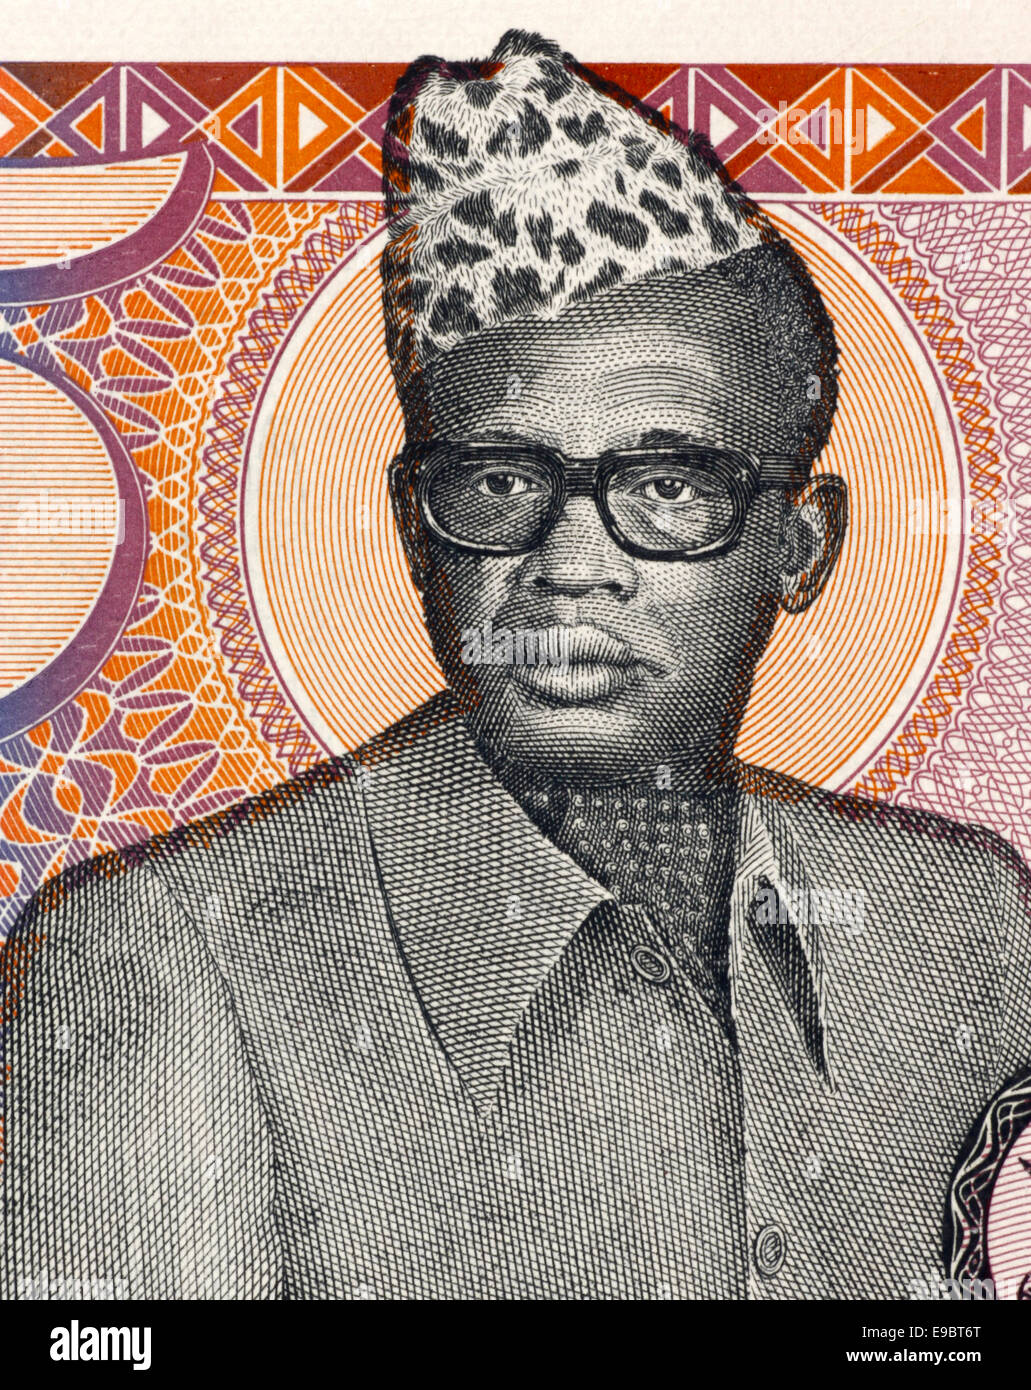 Mobutu Sese Seko (1930-1997) on 5 Zaires 1985 Banknote from Zaire. President of the Democratic Republic of the Congo. - Stock Image